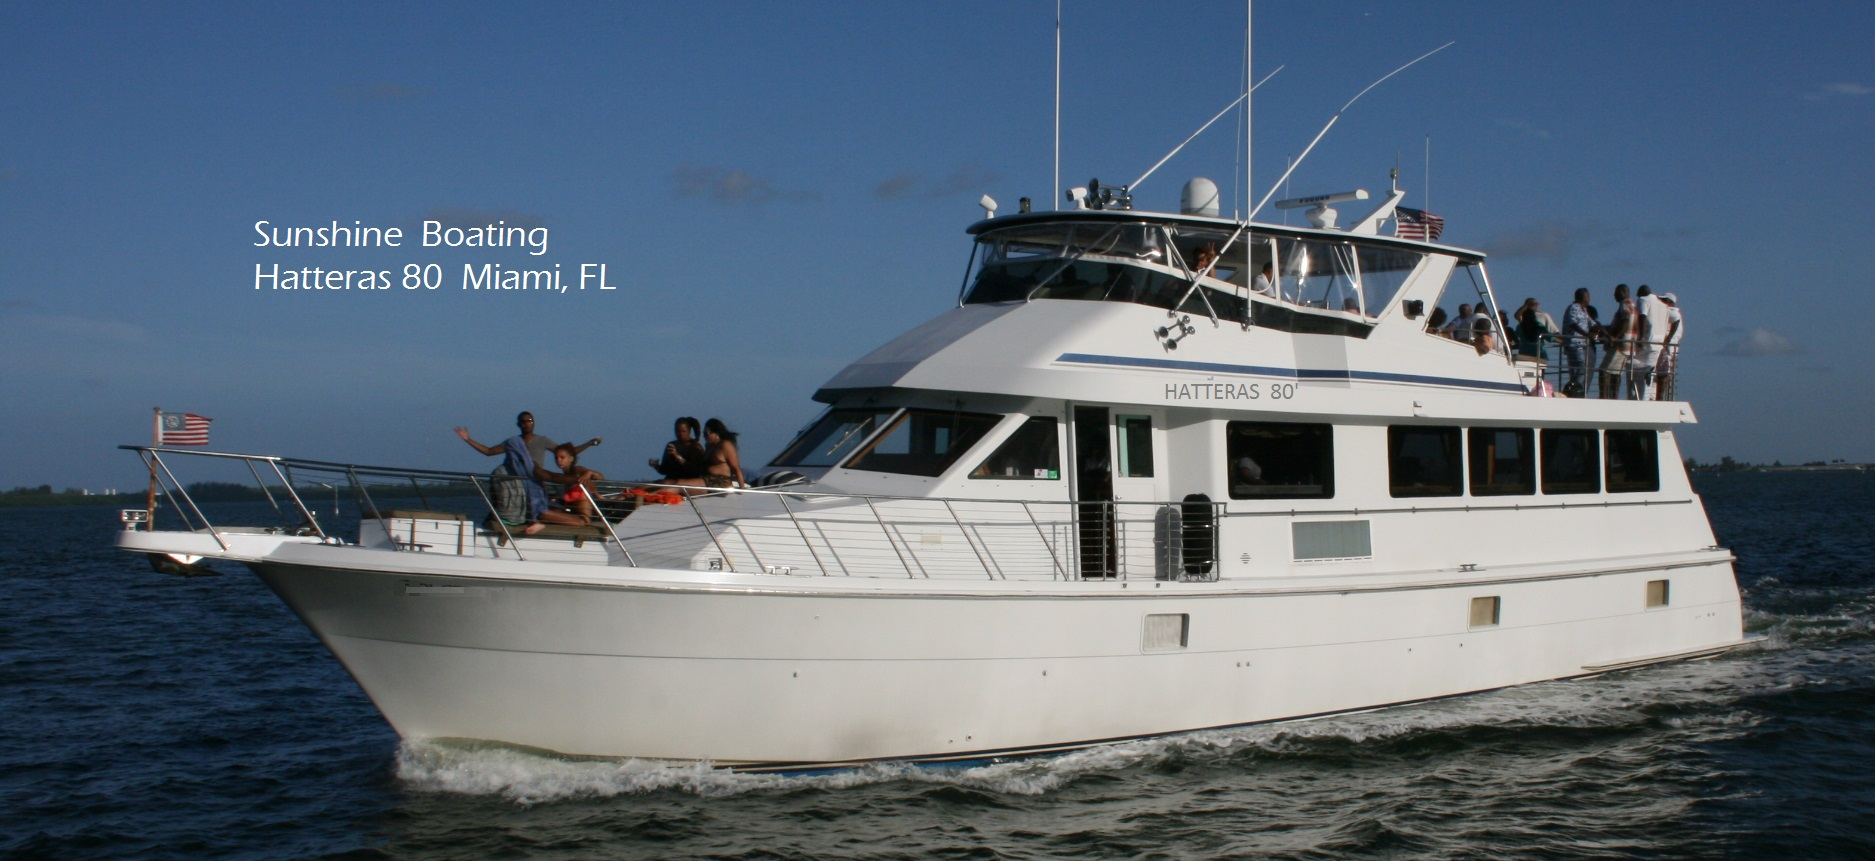 Party boat yacht rental in miami sunshine boating for 80 hatteras motor yacht